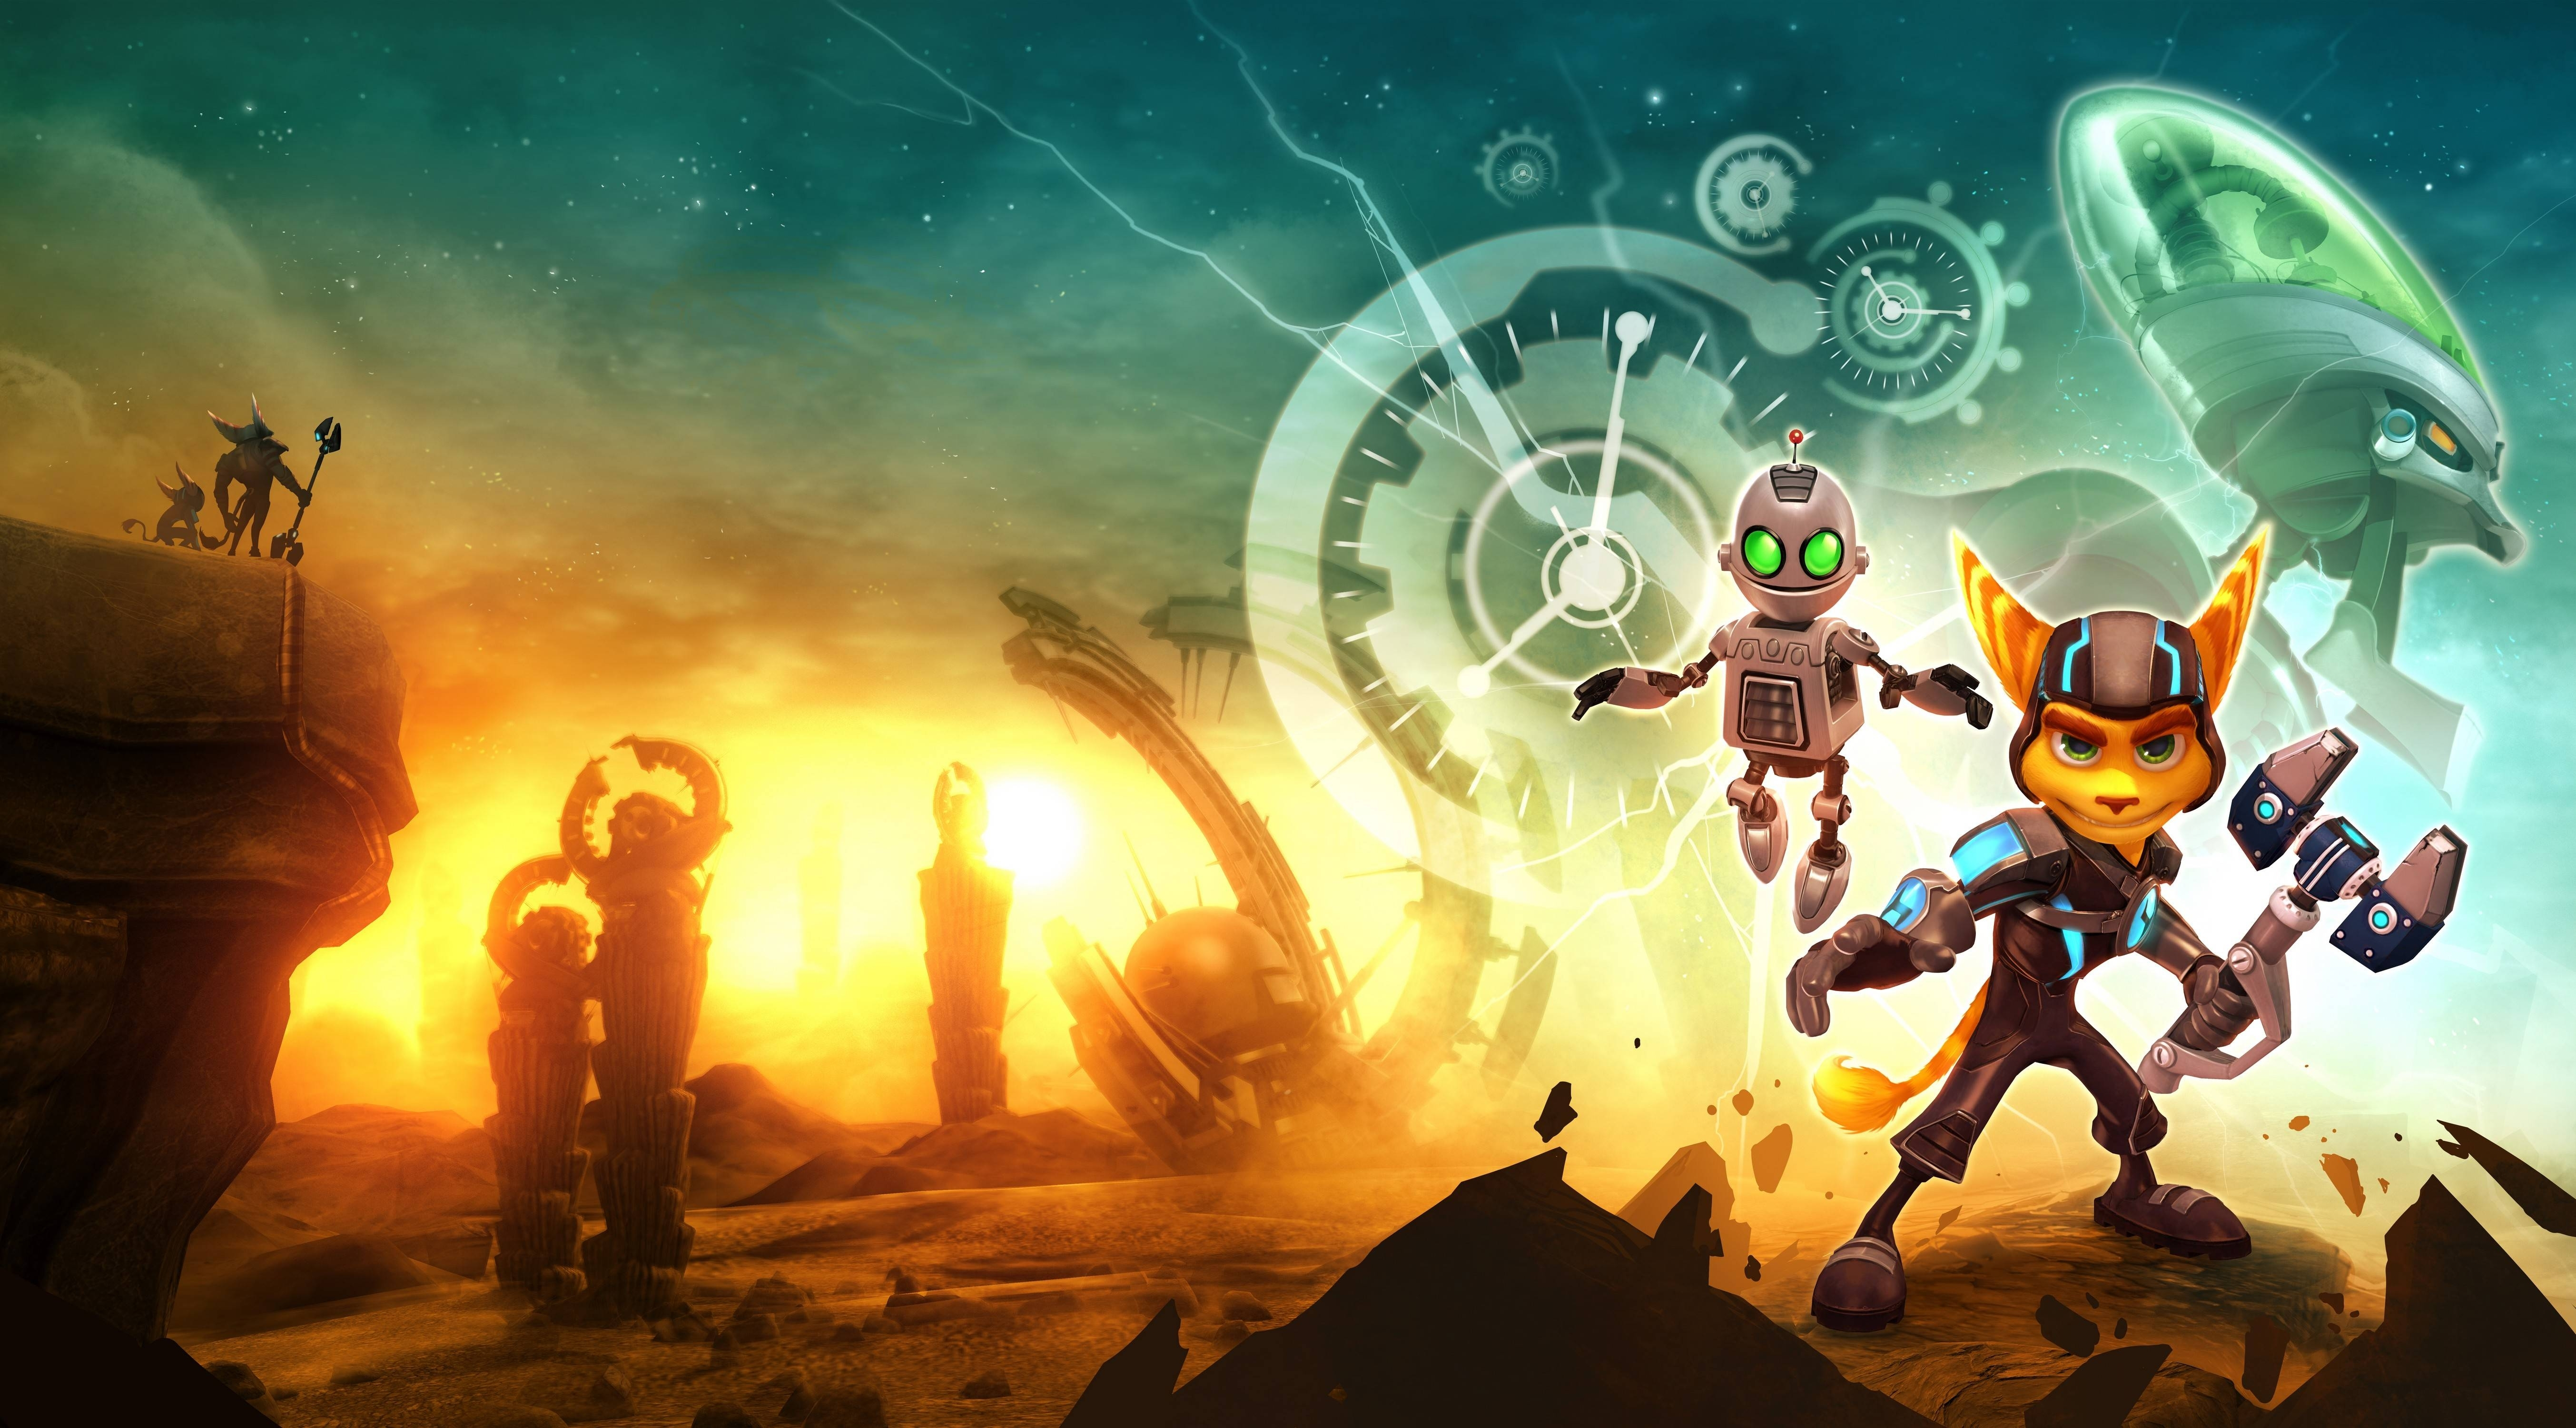 10 Best Ratchet And Clank Backgrounds FULL HD 1080p For PC Background